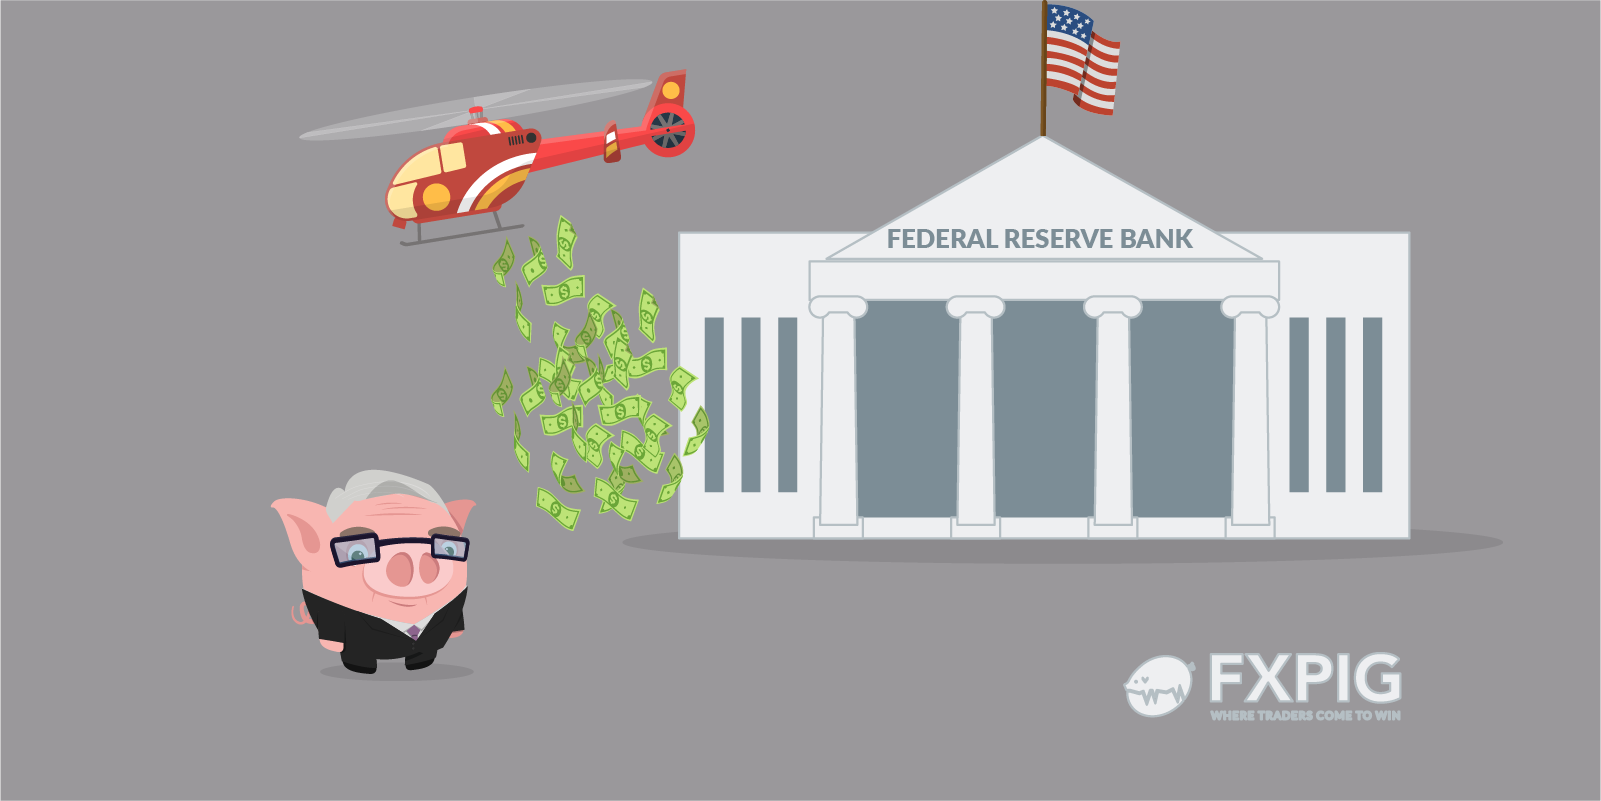 Forex_today_treasury-Fed_feud_confuses-the-markets_FXPIG